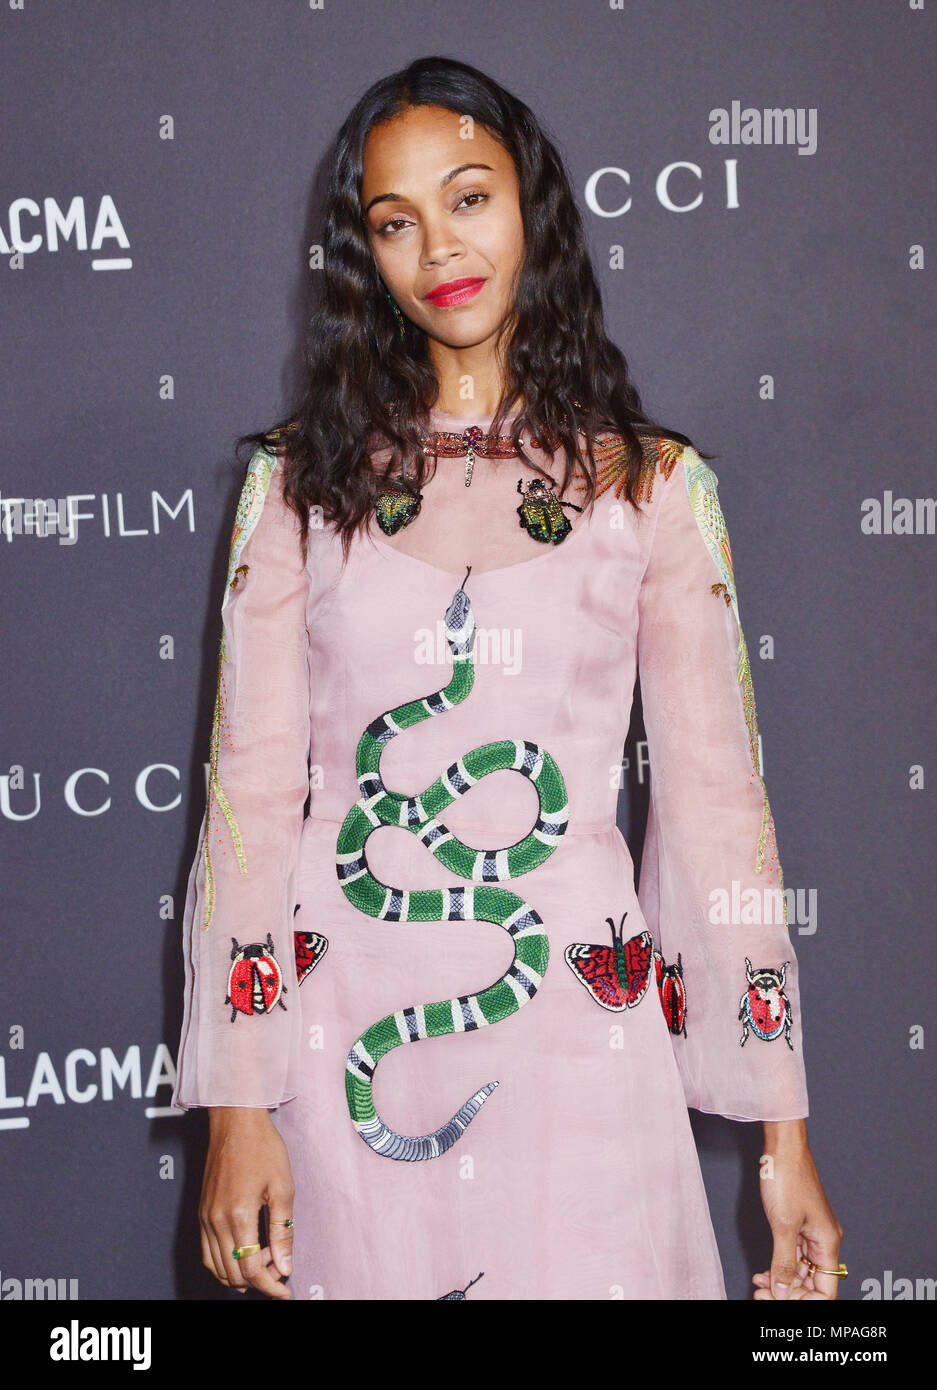 Zoe Saldana 024 at the 2016 LACMA Art + Film Gala Honoring